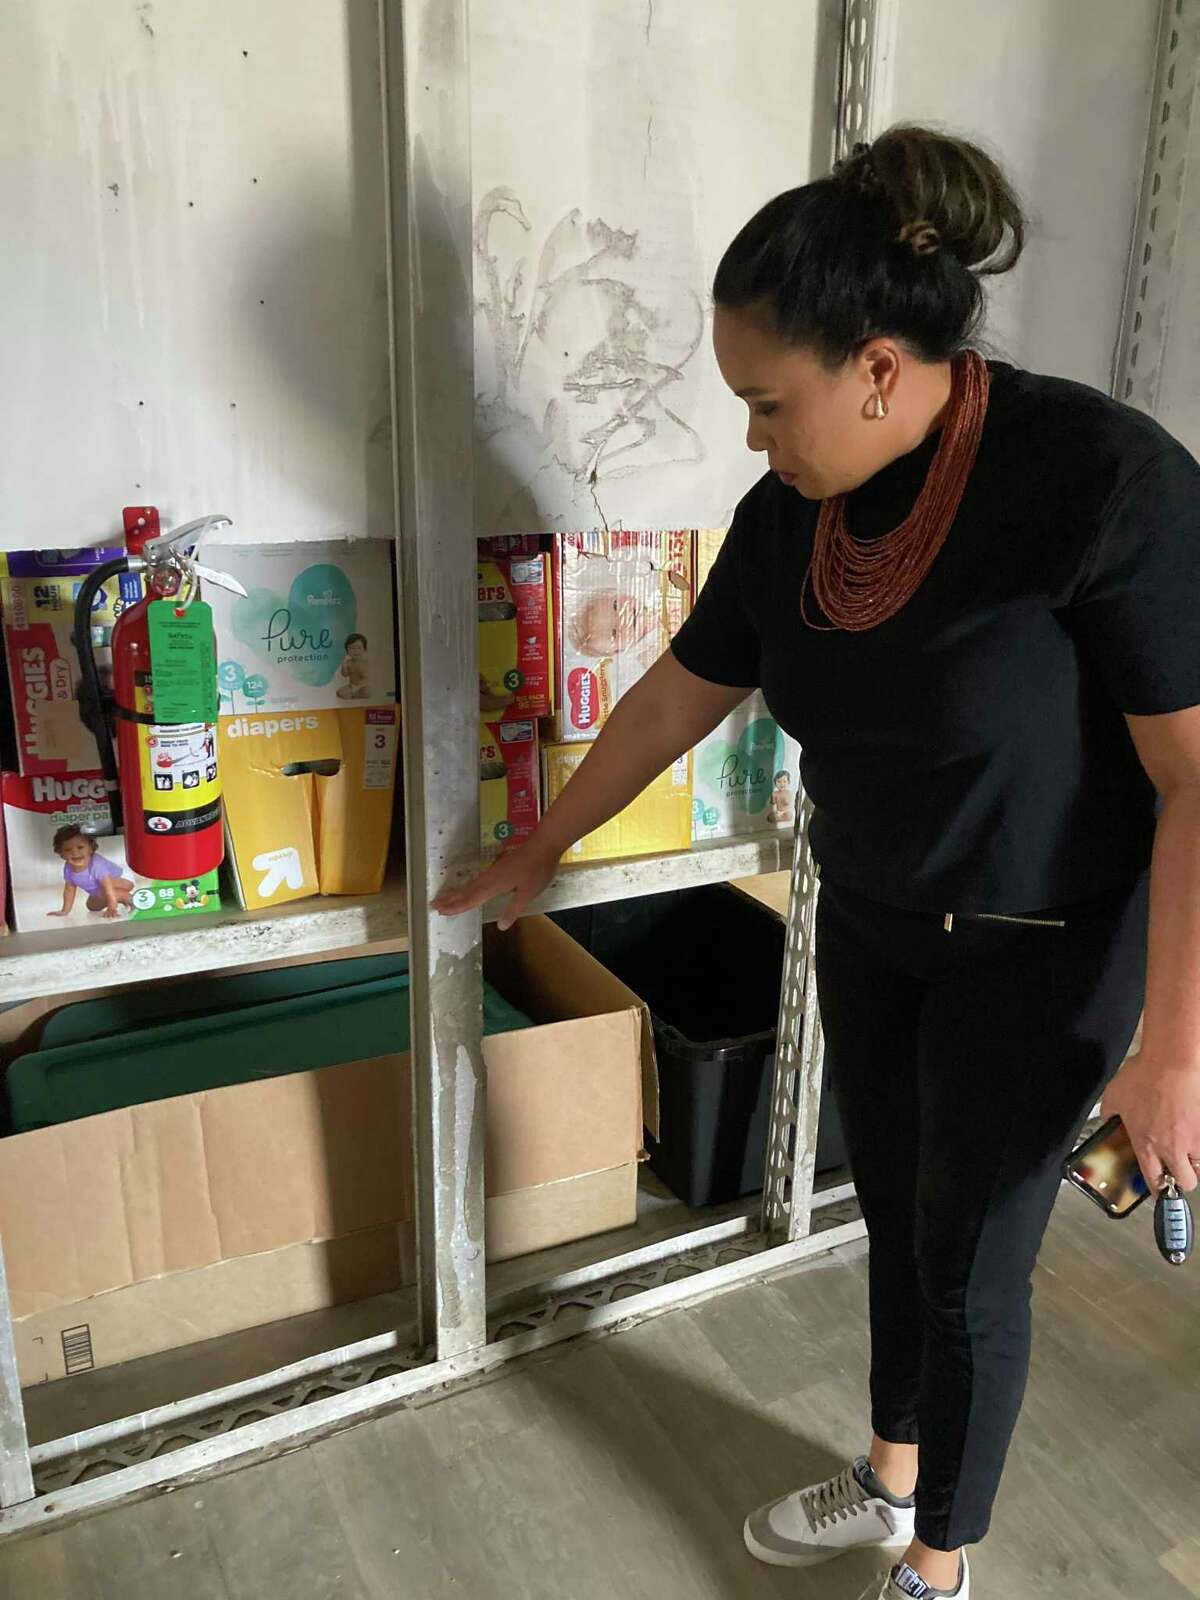 Deborah Tomov, Executive Director of Family Services of Southeast Texas, demonstrates how high the water came up to when Hurricane Imelda flooded their shelter. The height, she said, is one in which babies and children can easily drown.